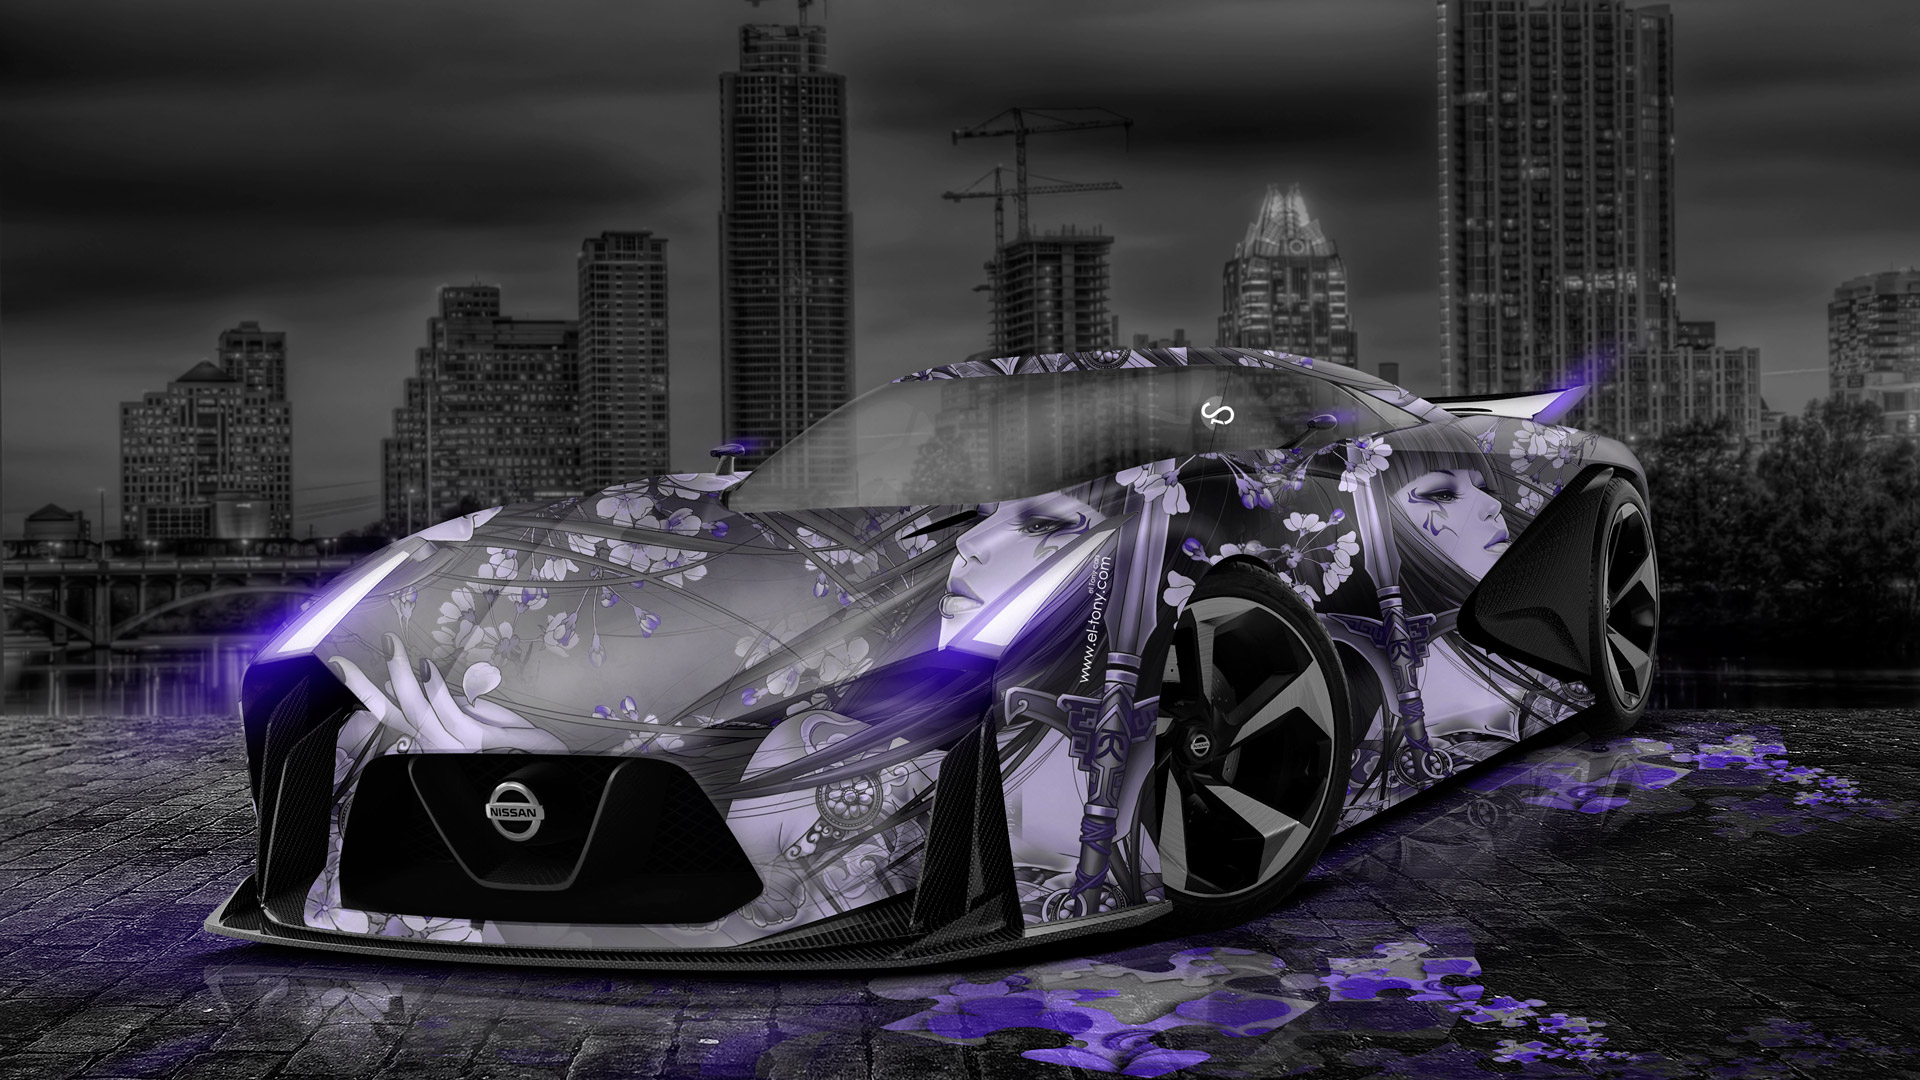 1920x1080 - Nissan Concept Wallpapers 27